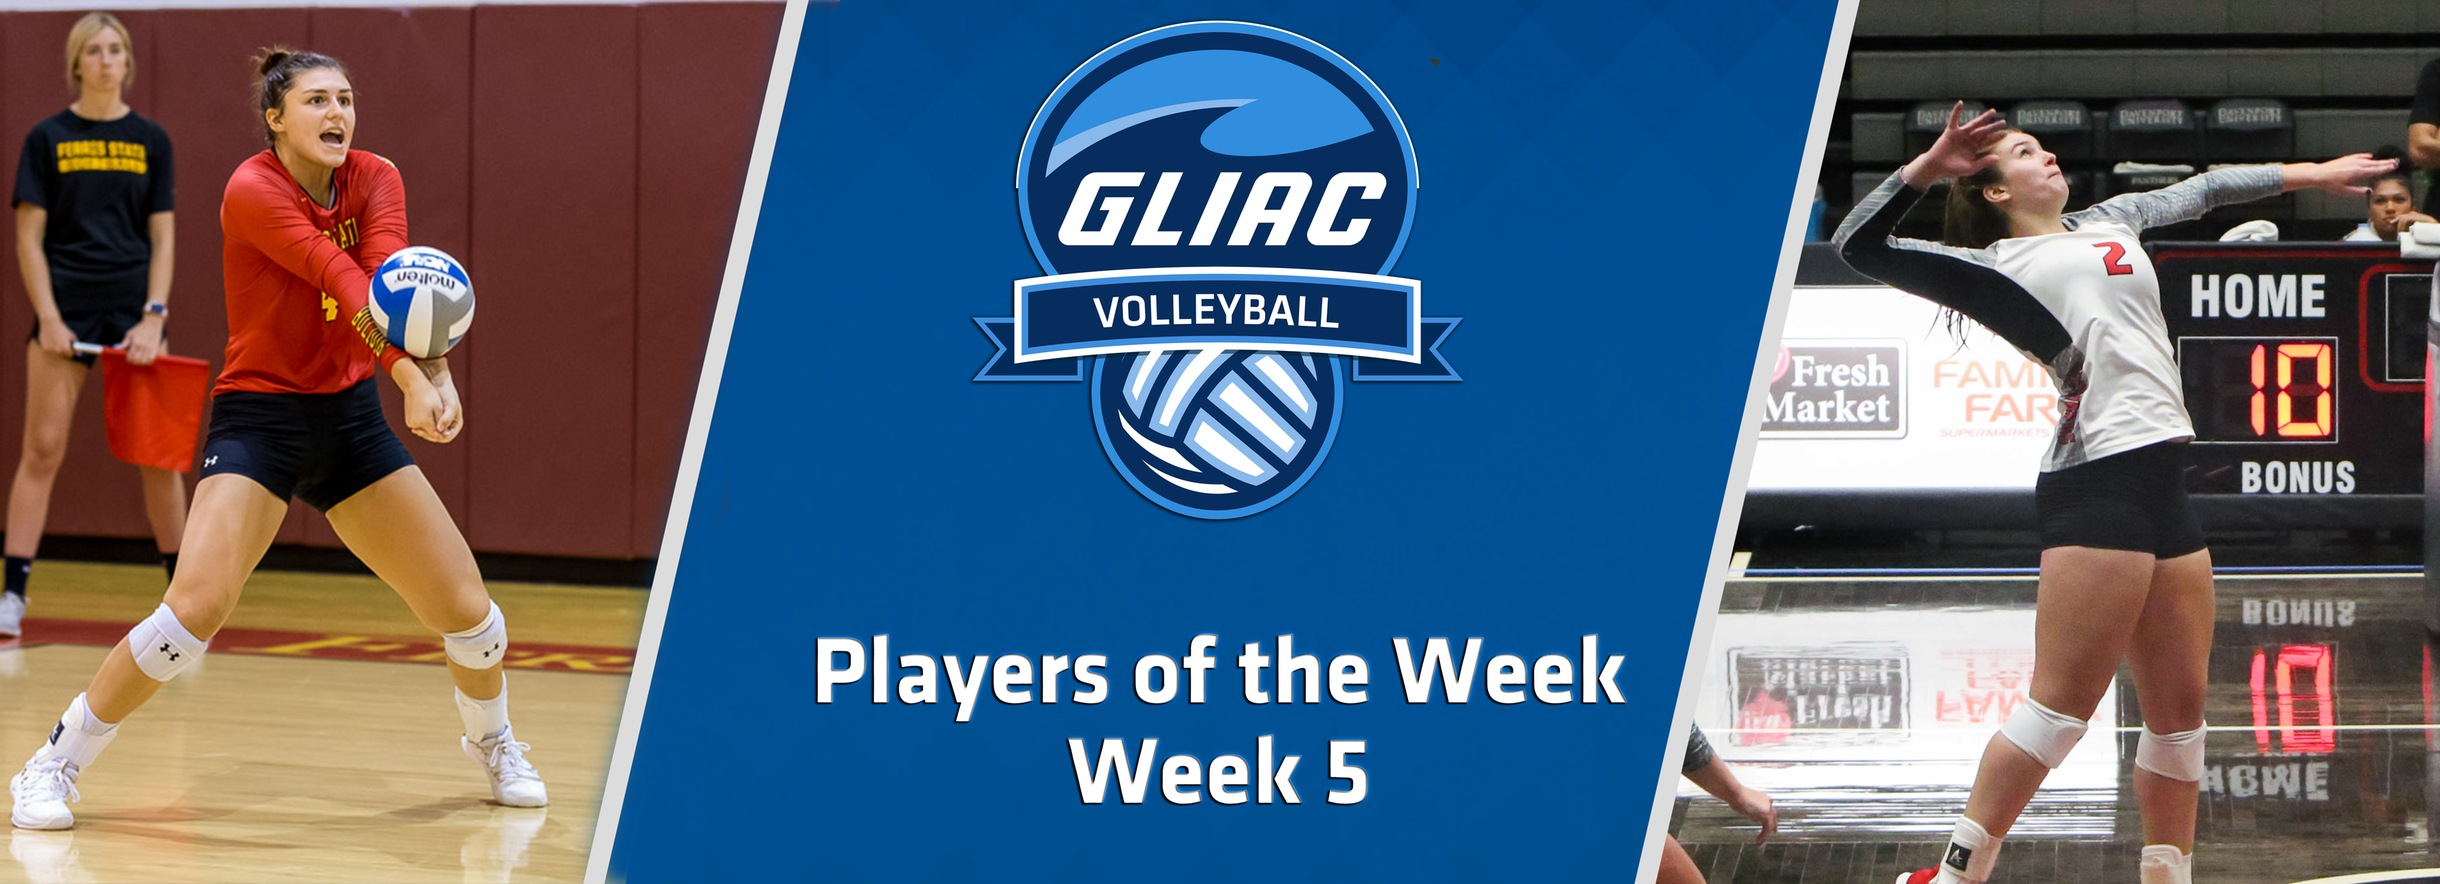 FSU's Cappel, DU's Herr Claim GLIAC Volleyball Players of the Week